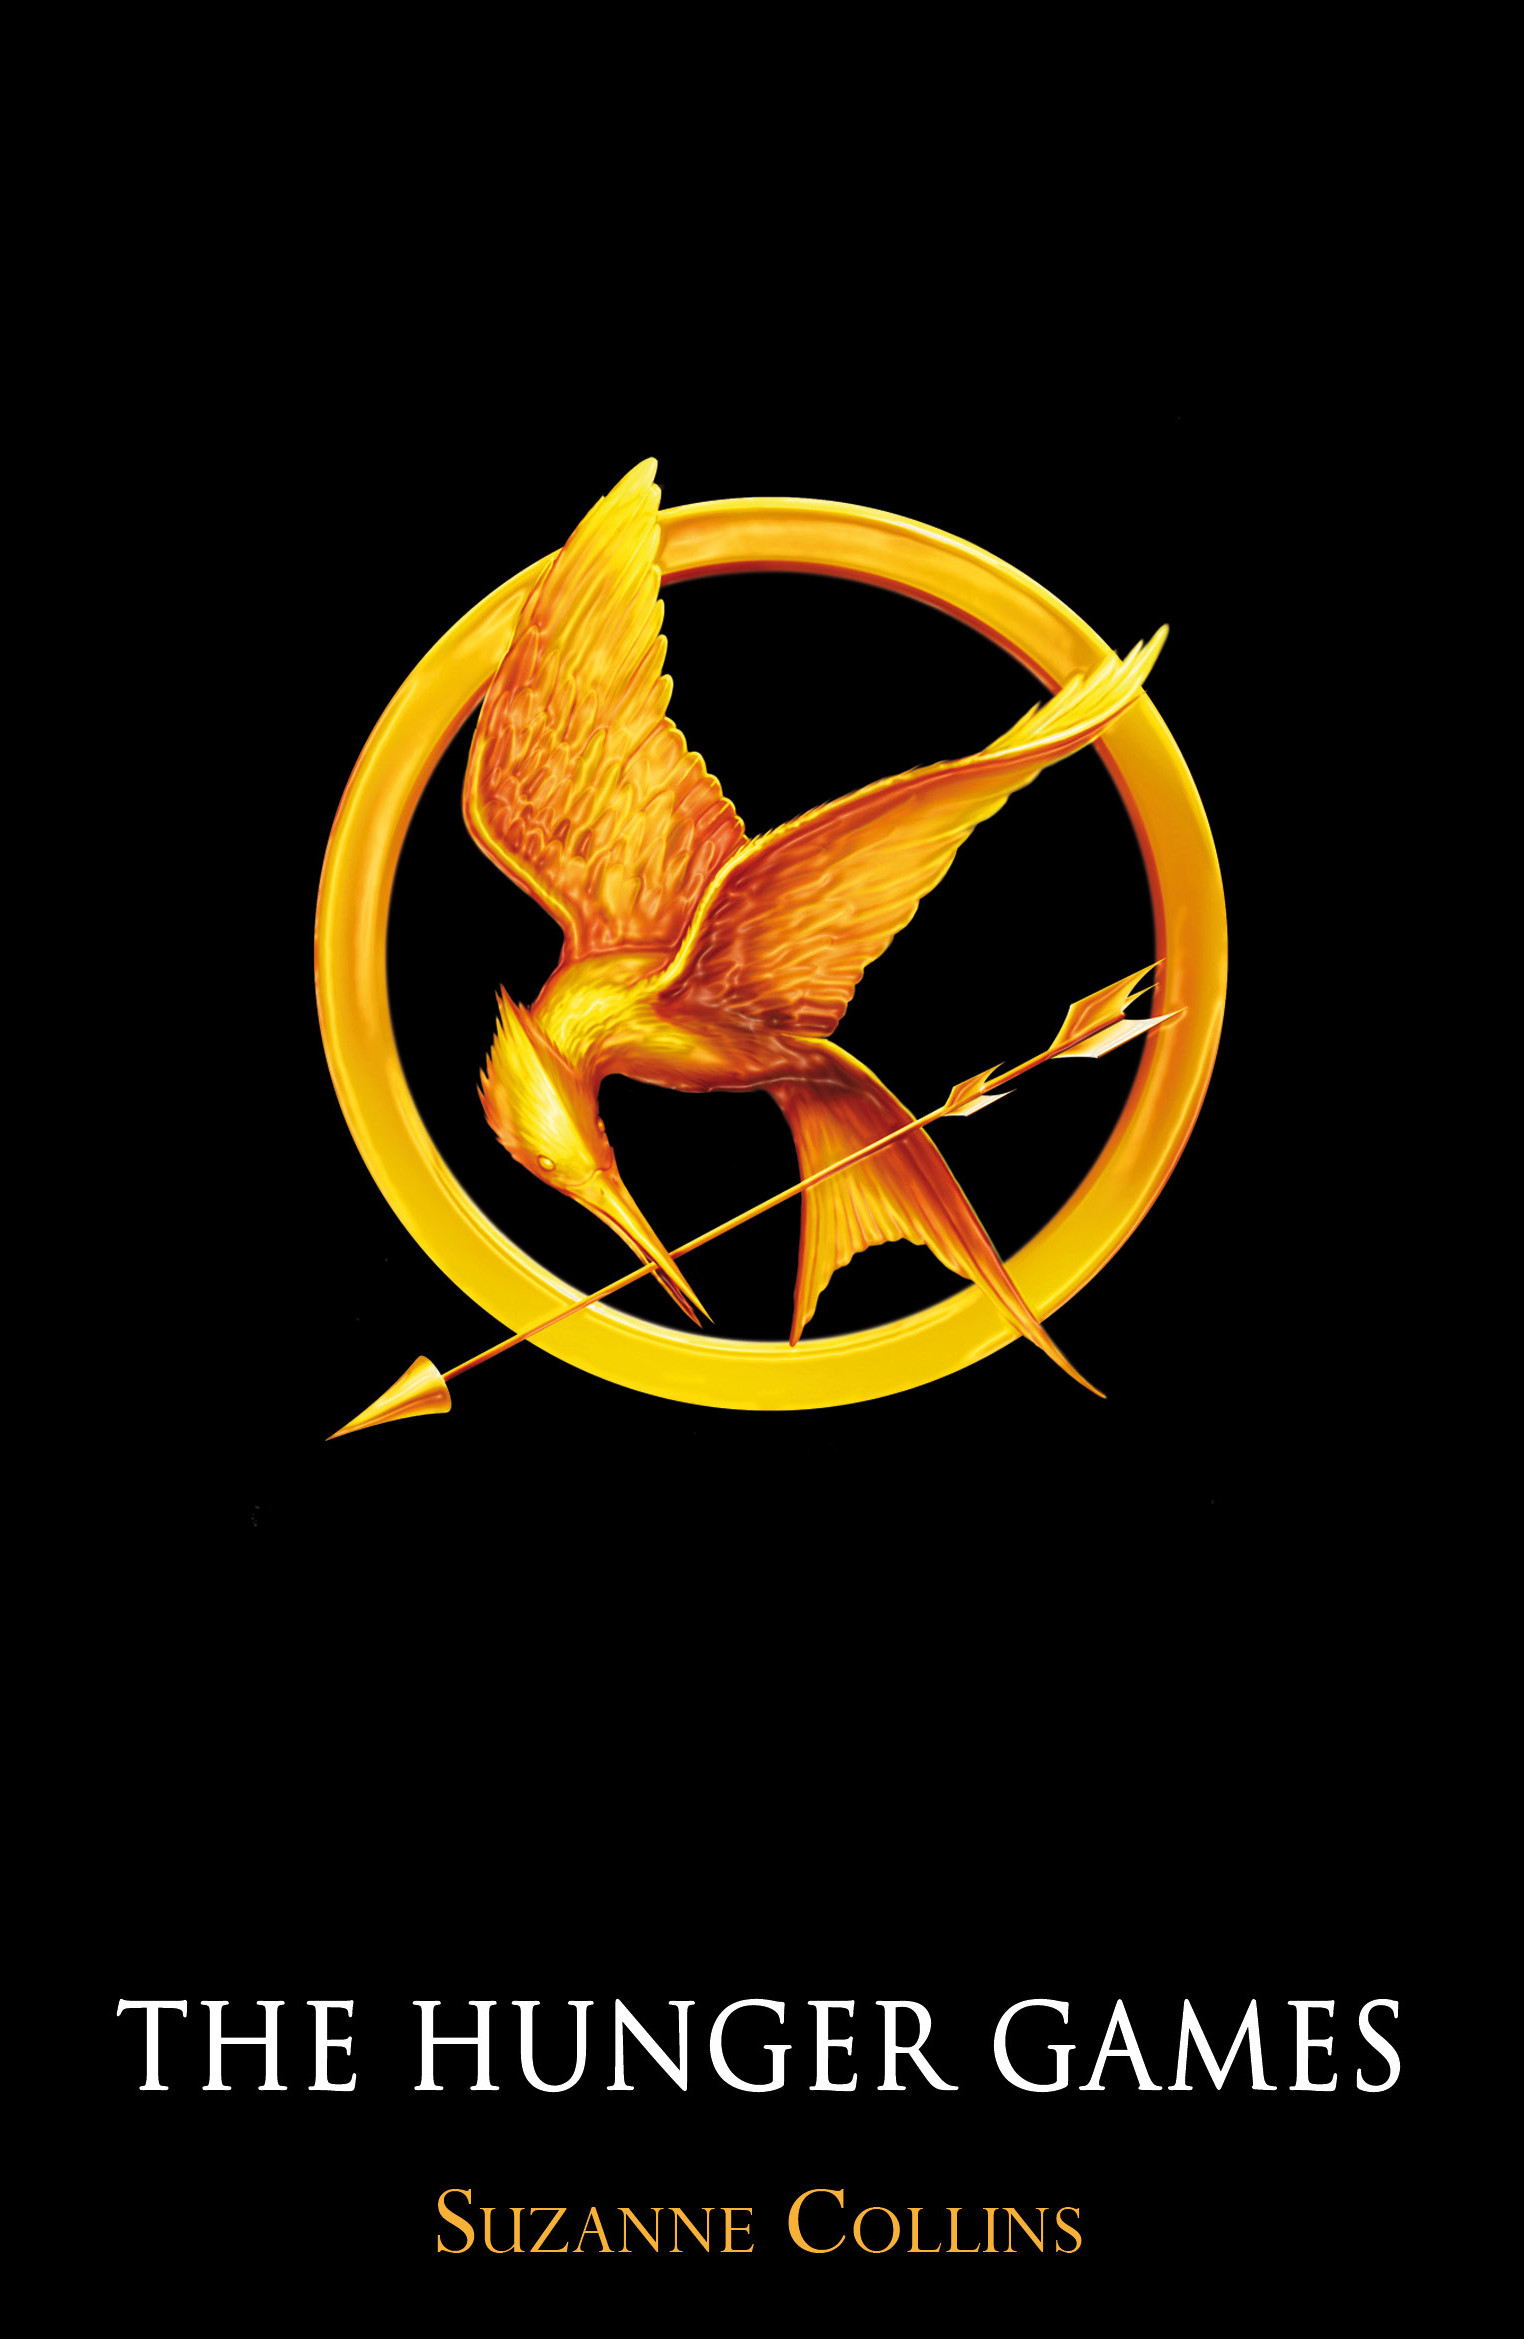 1524x2339 Tribute Arena images The Hunger Games Promotional Poster HD wallpaper and  background photos